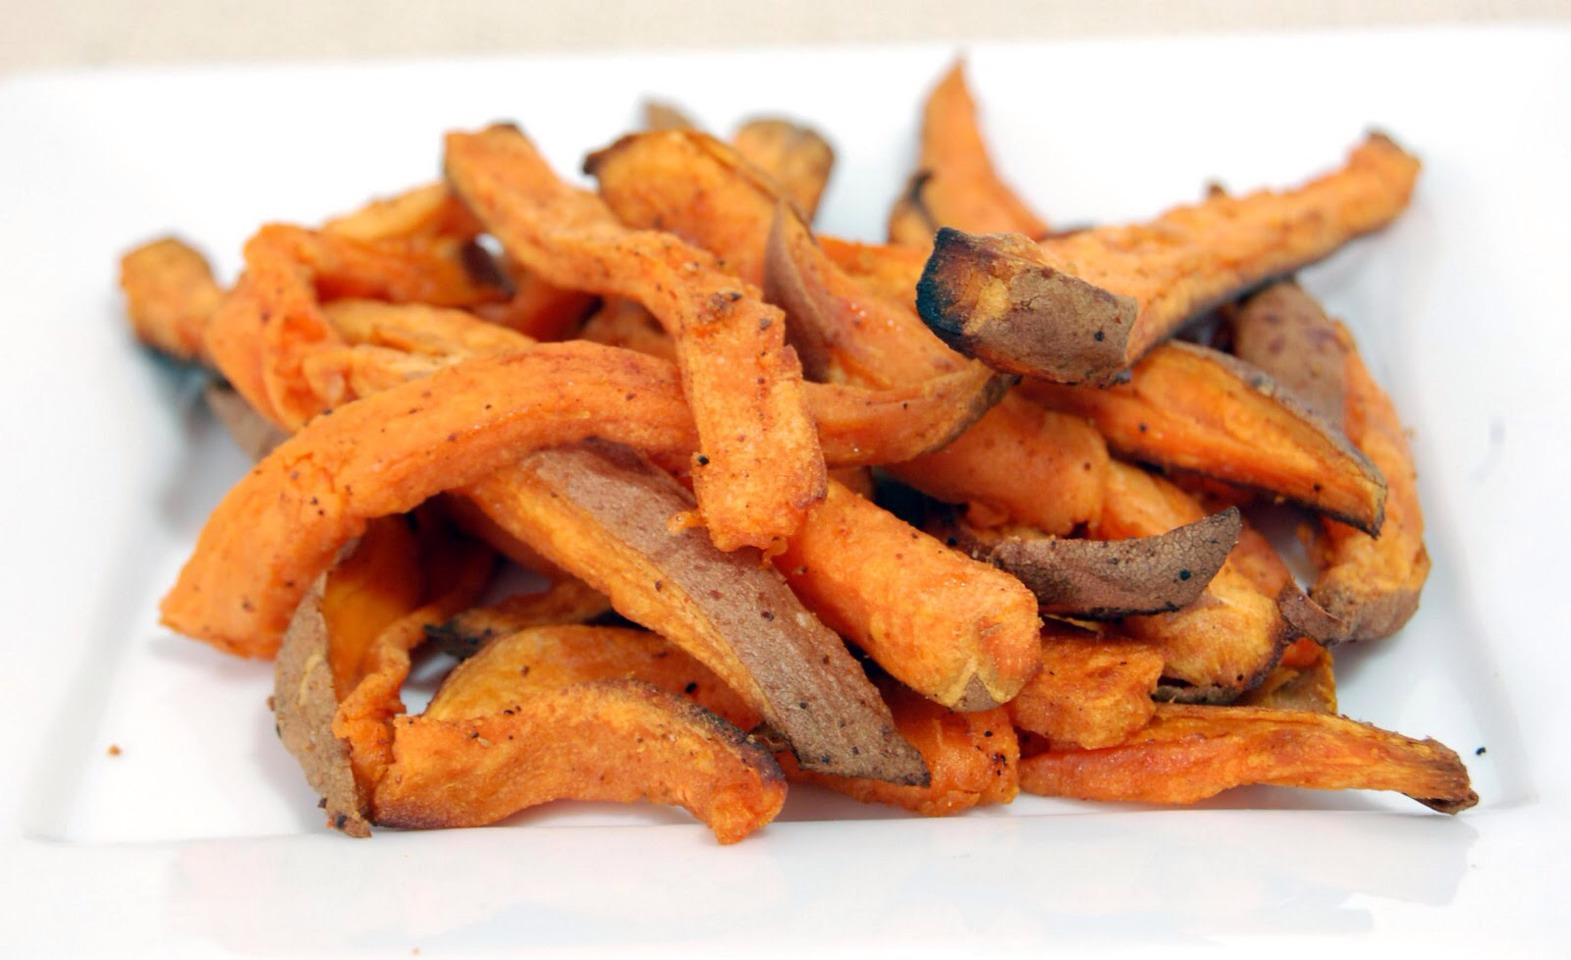 Peel the sweet potato and slice into fry shapes. Preheat oven to 425 degrees farenheight. Put the fries in a ziplock bag with enough olive oil to lightly coat the fries, a half tablespoon of salt per potato, and a tiny sprinkle of cornstarch. Shake and lay on a baking pan. Bake for 8 min each side